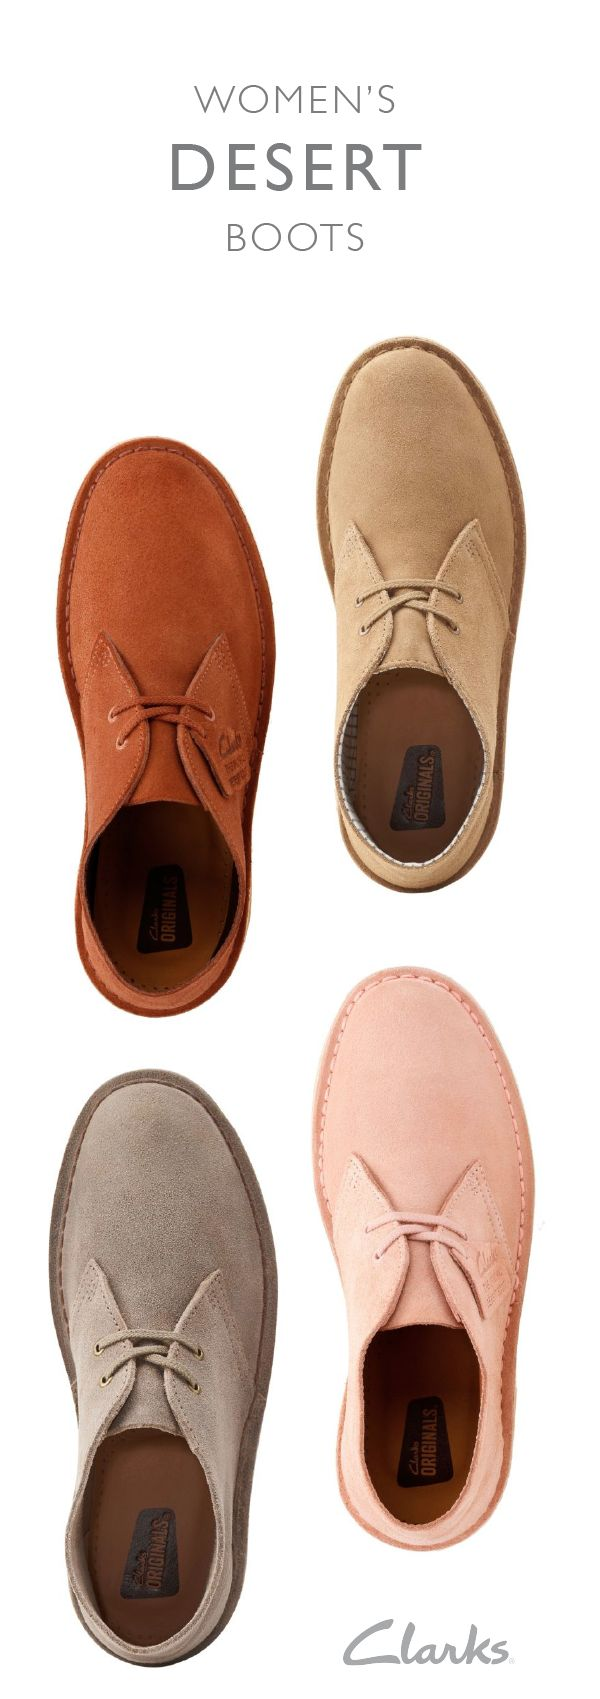 Since arriving in 1949, the iconic Desert Boot has brought comfort and style to people around the world. With its clean and elegant design, it's a versatile shoe that can go with just about anything in your closet.